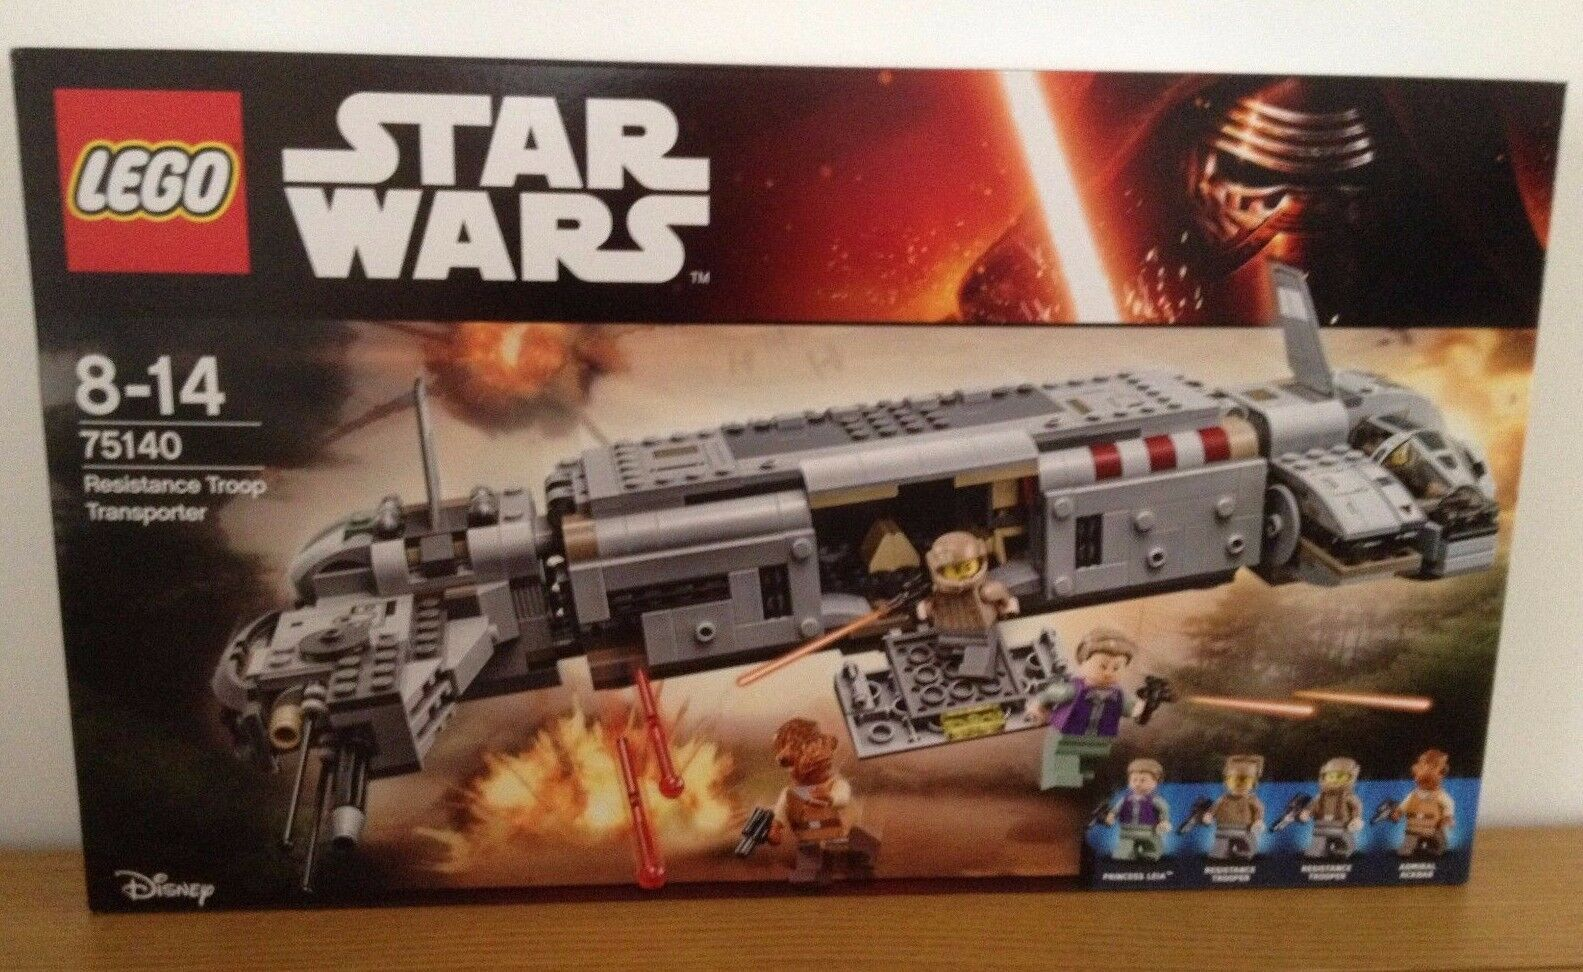 Lego Star Wars 75140 - Resistance Troop Transporter - Never Opened